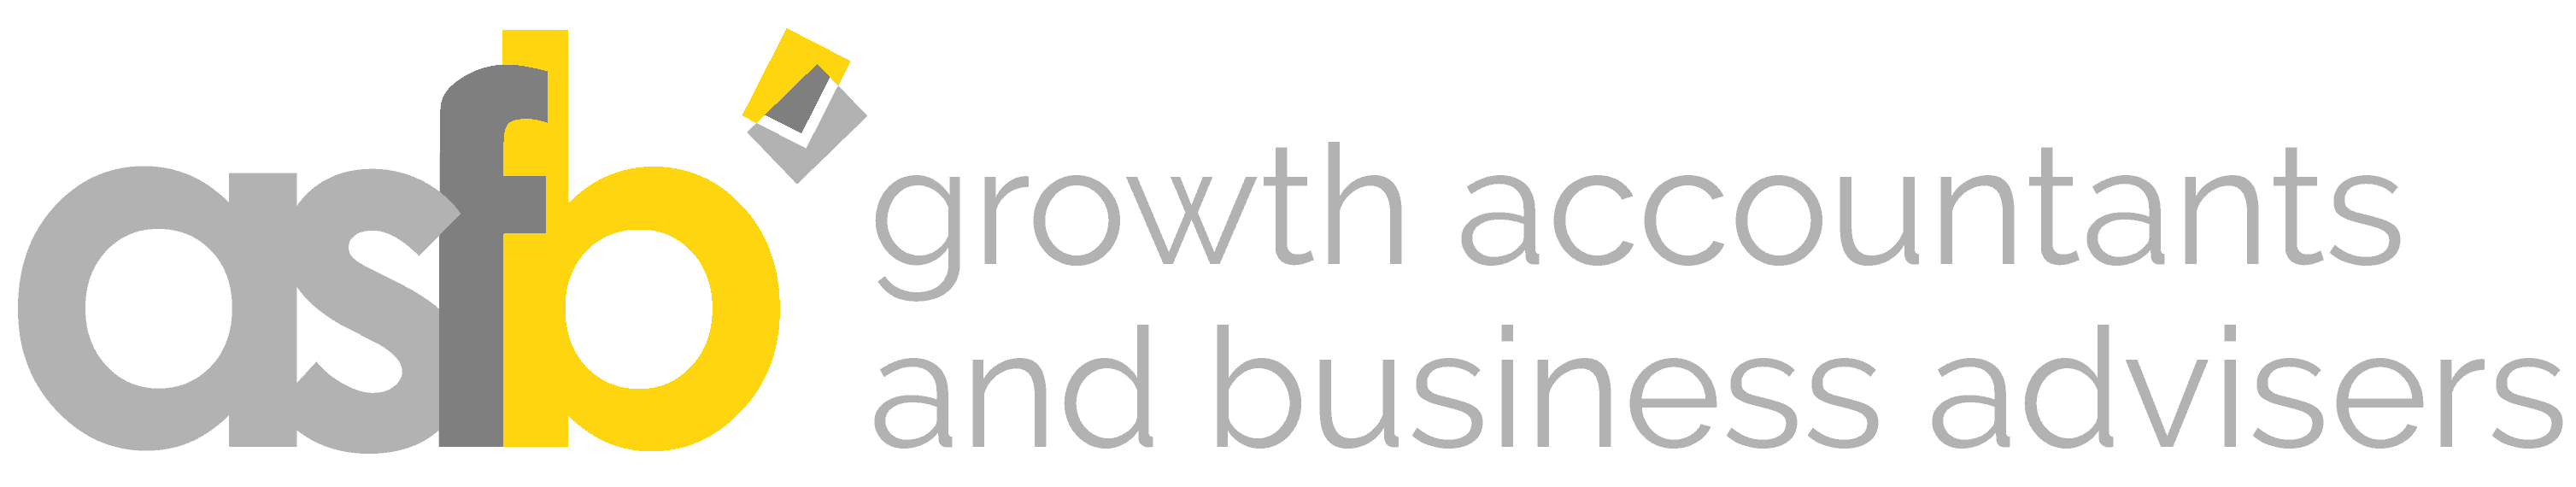 Growth Accountants And Business Advisors